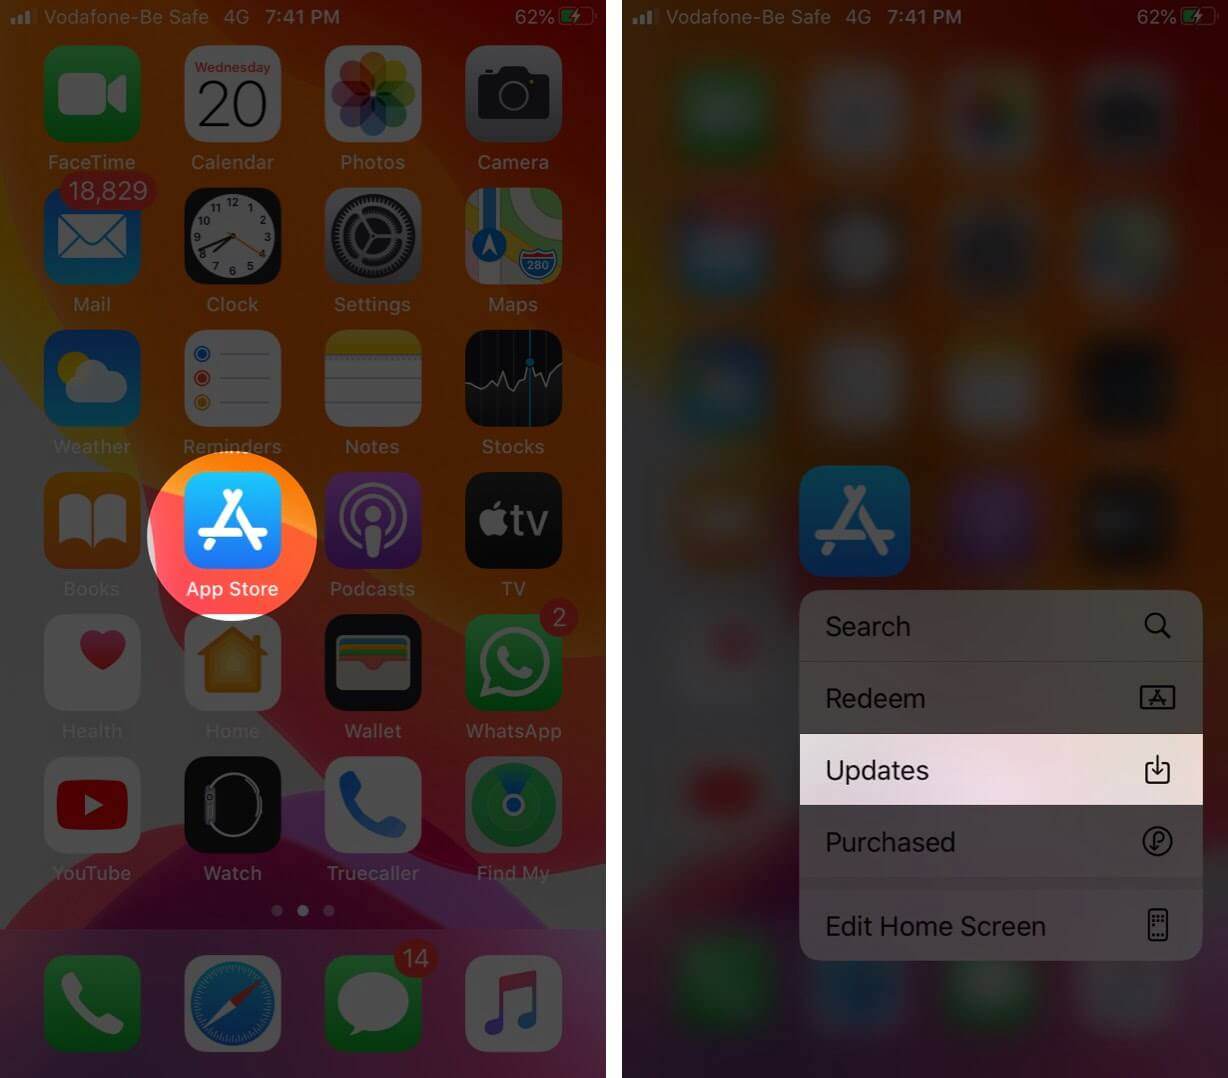 Touch and Hold The App Store and Tap on Updates